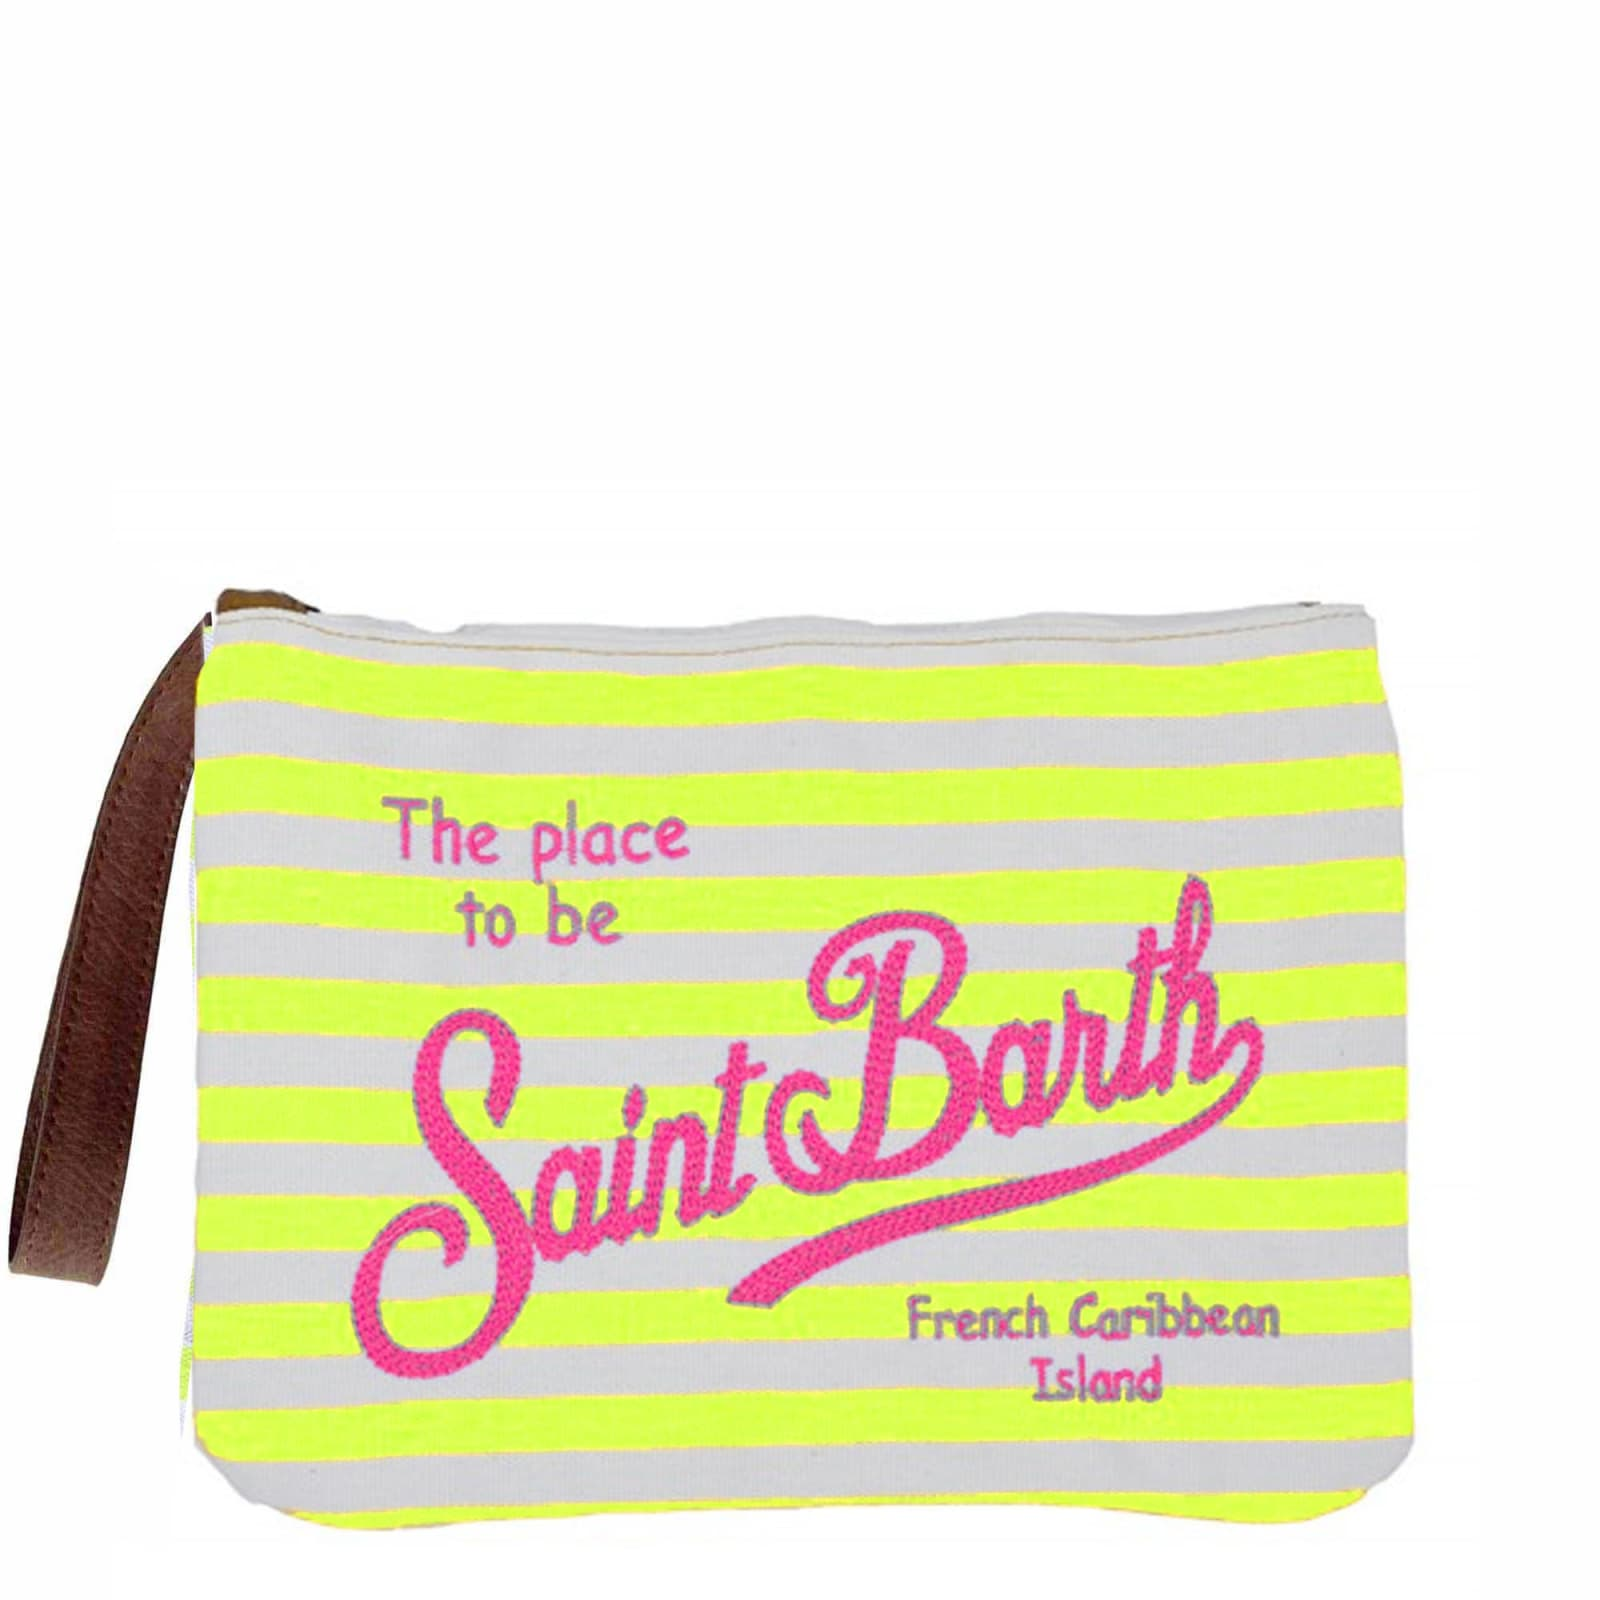 Fluo Yellow Striped Canvas Pochette Whit Embroidered Saint Barth